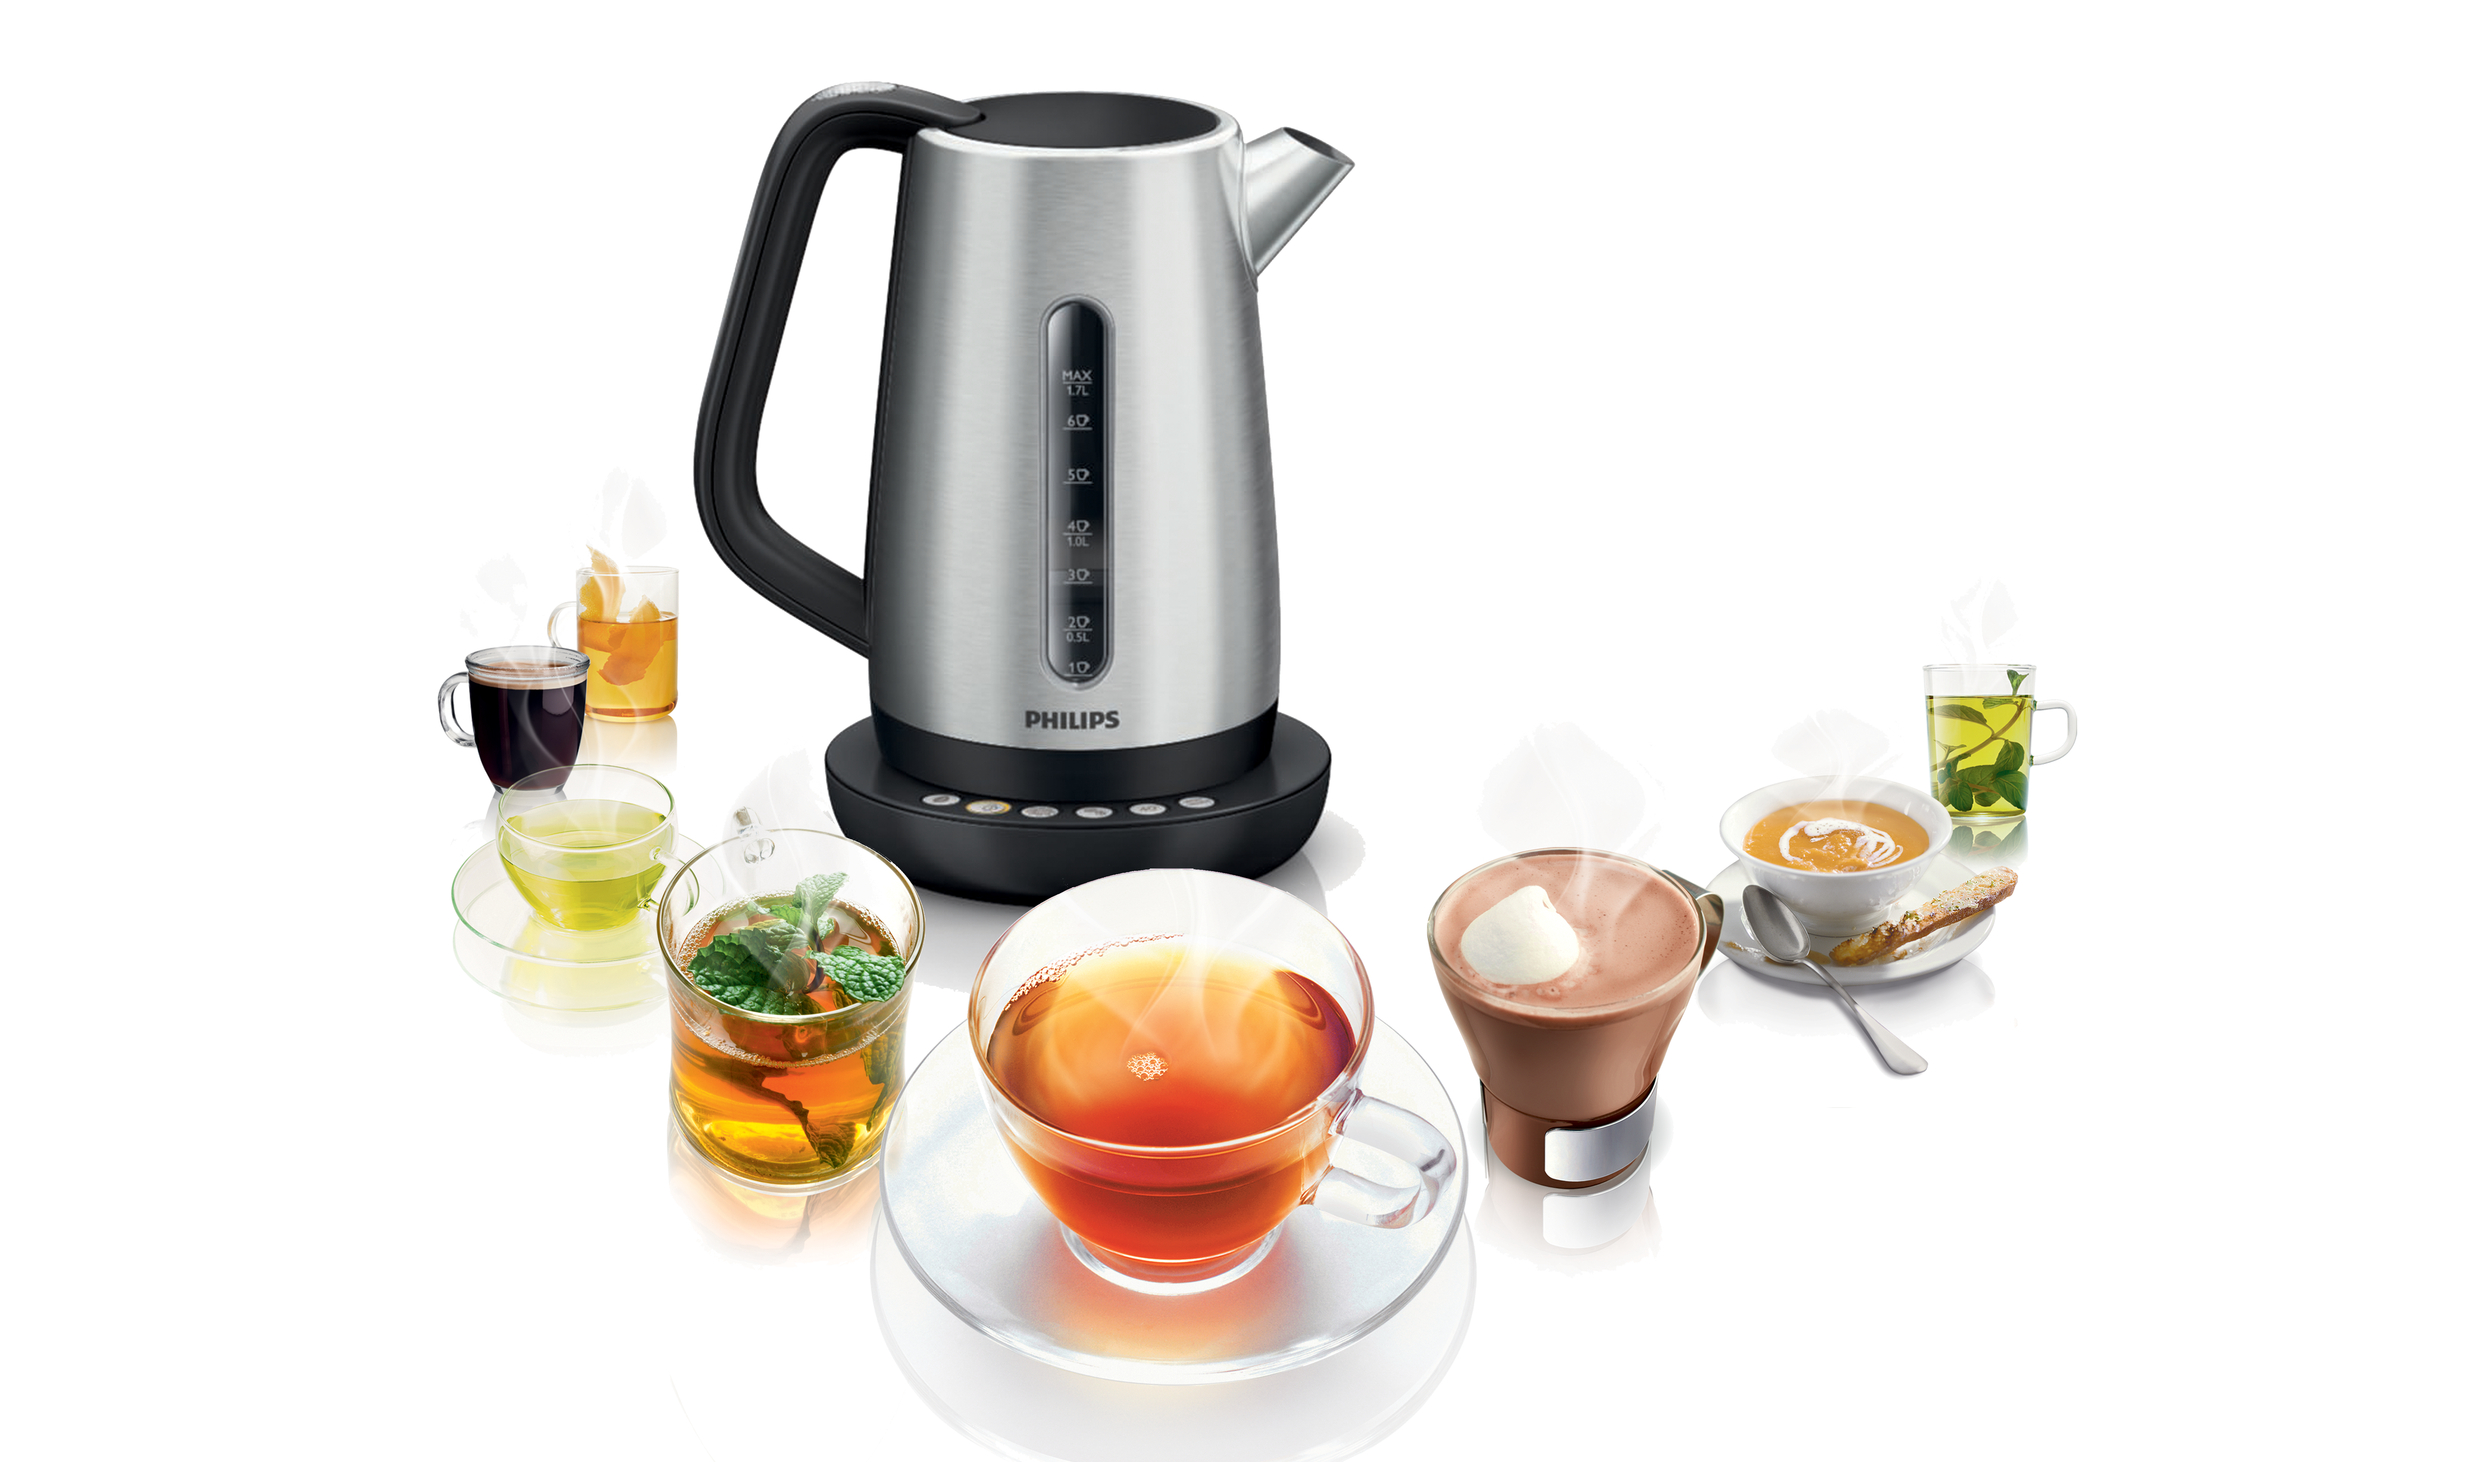 Philips new Avance Collection